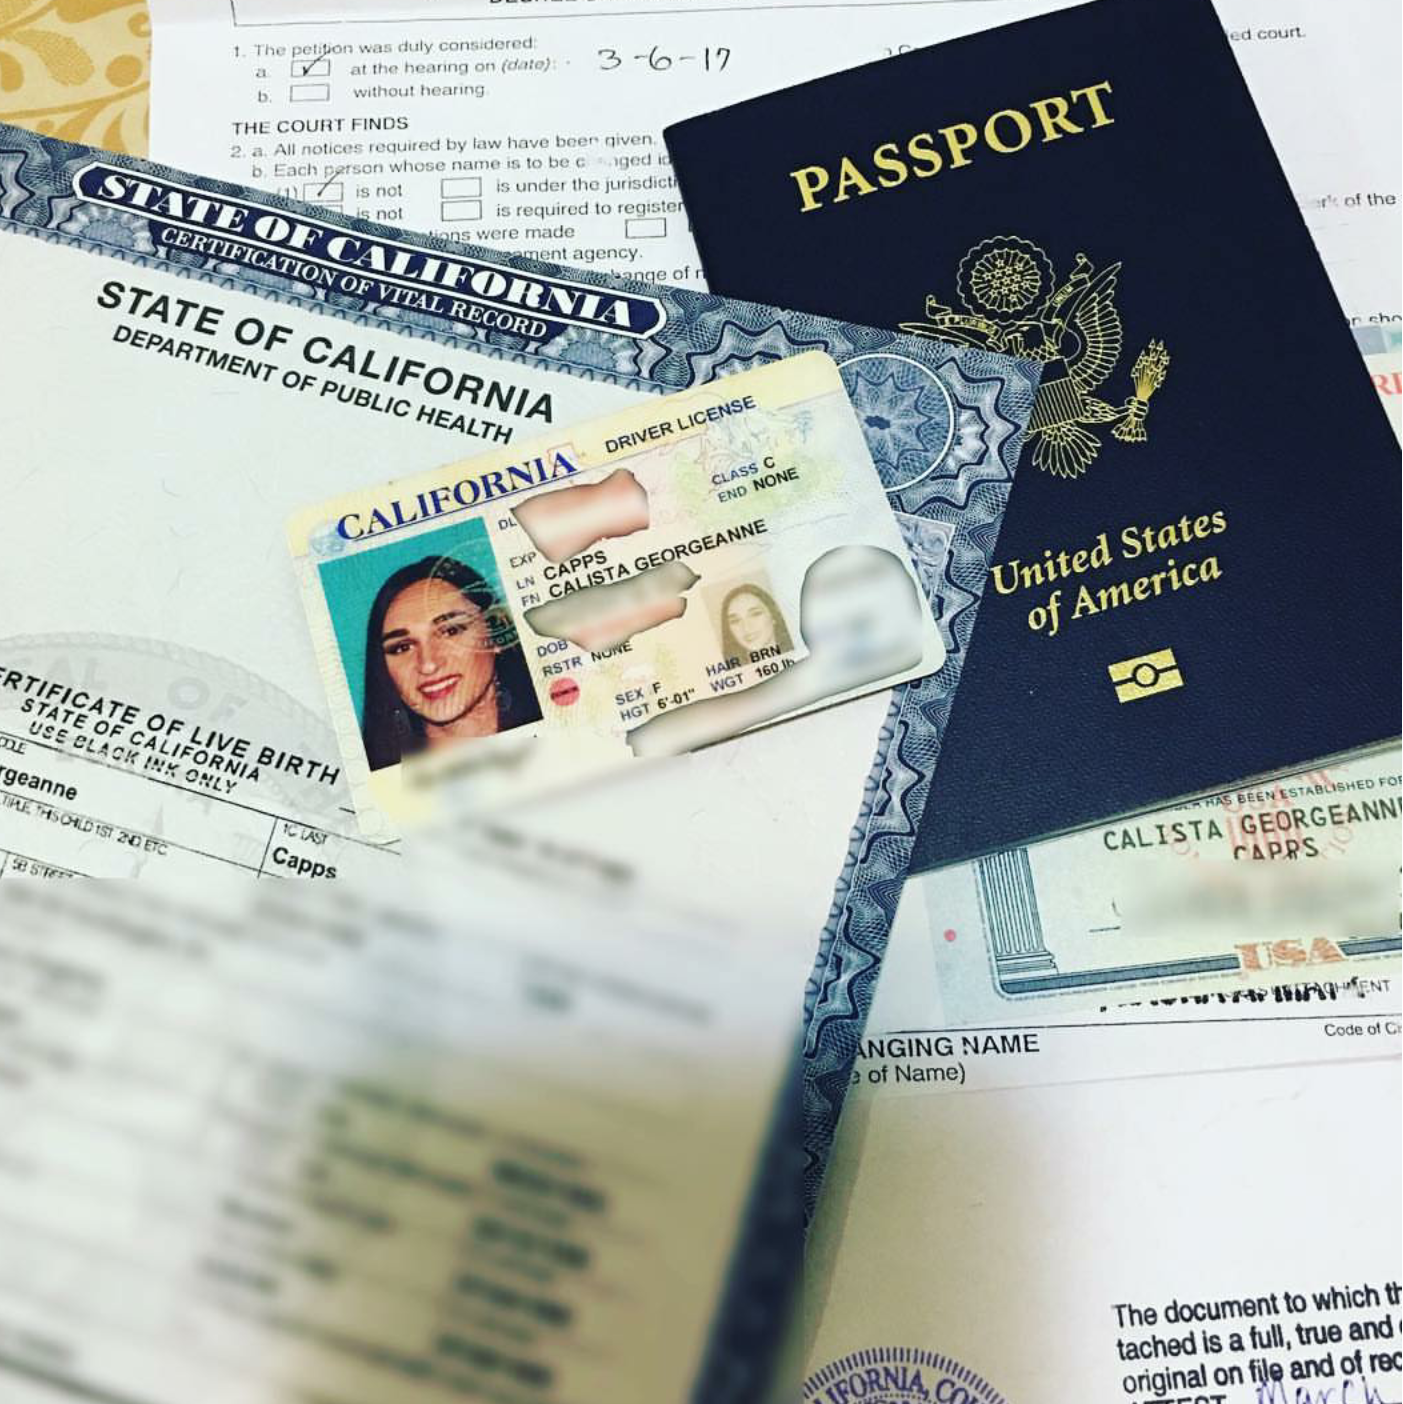 Home Passport online, Apply for passport, Drivers license